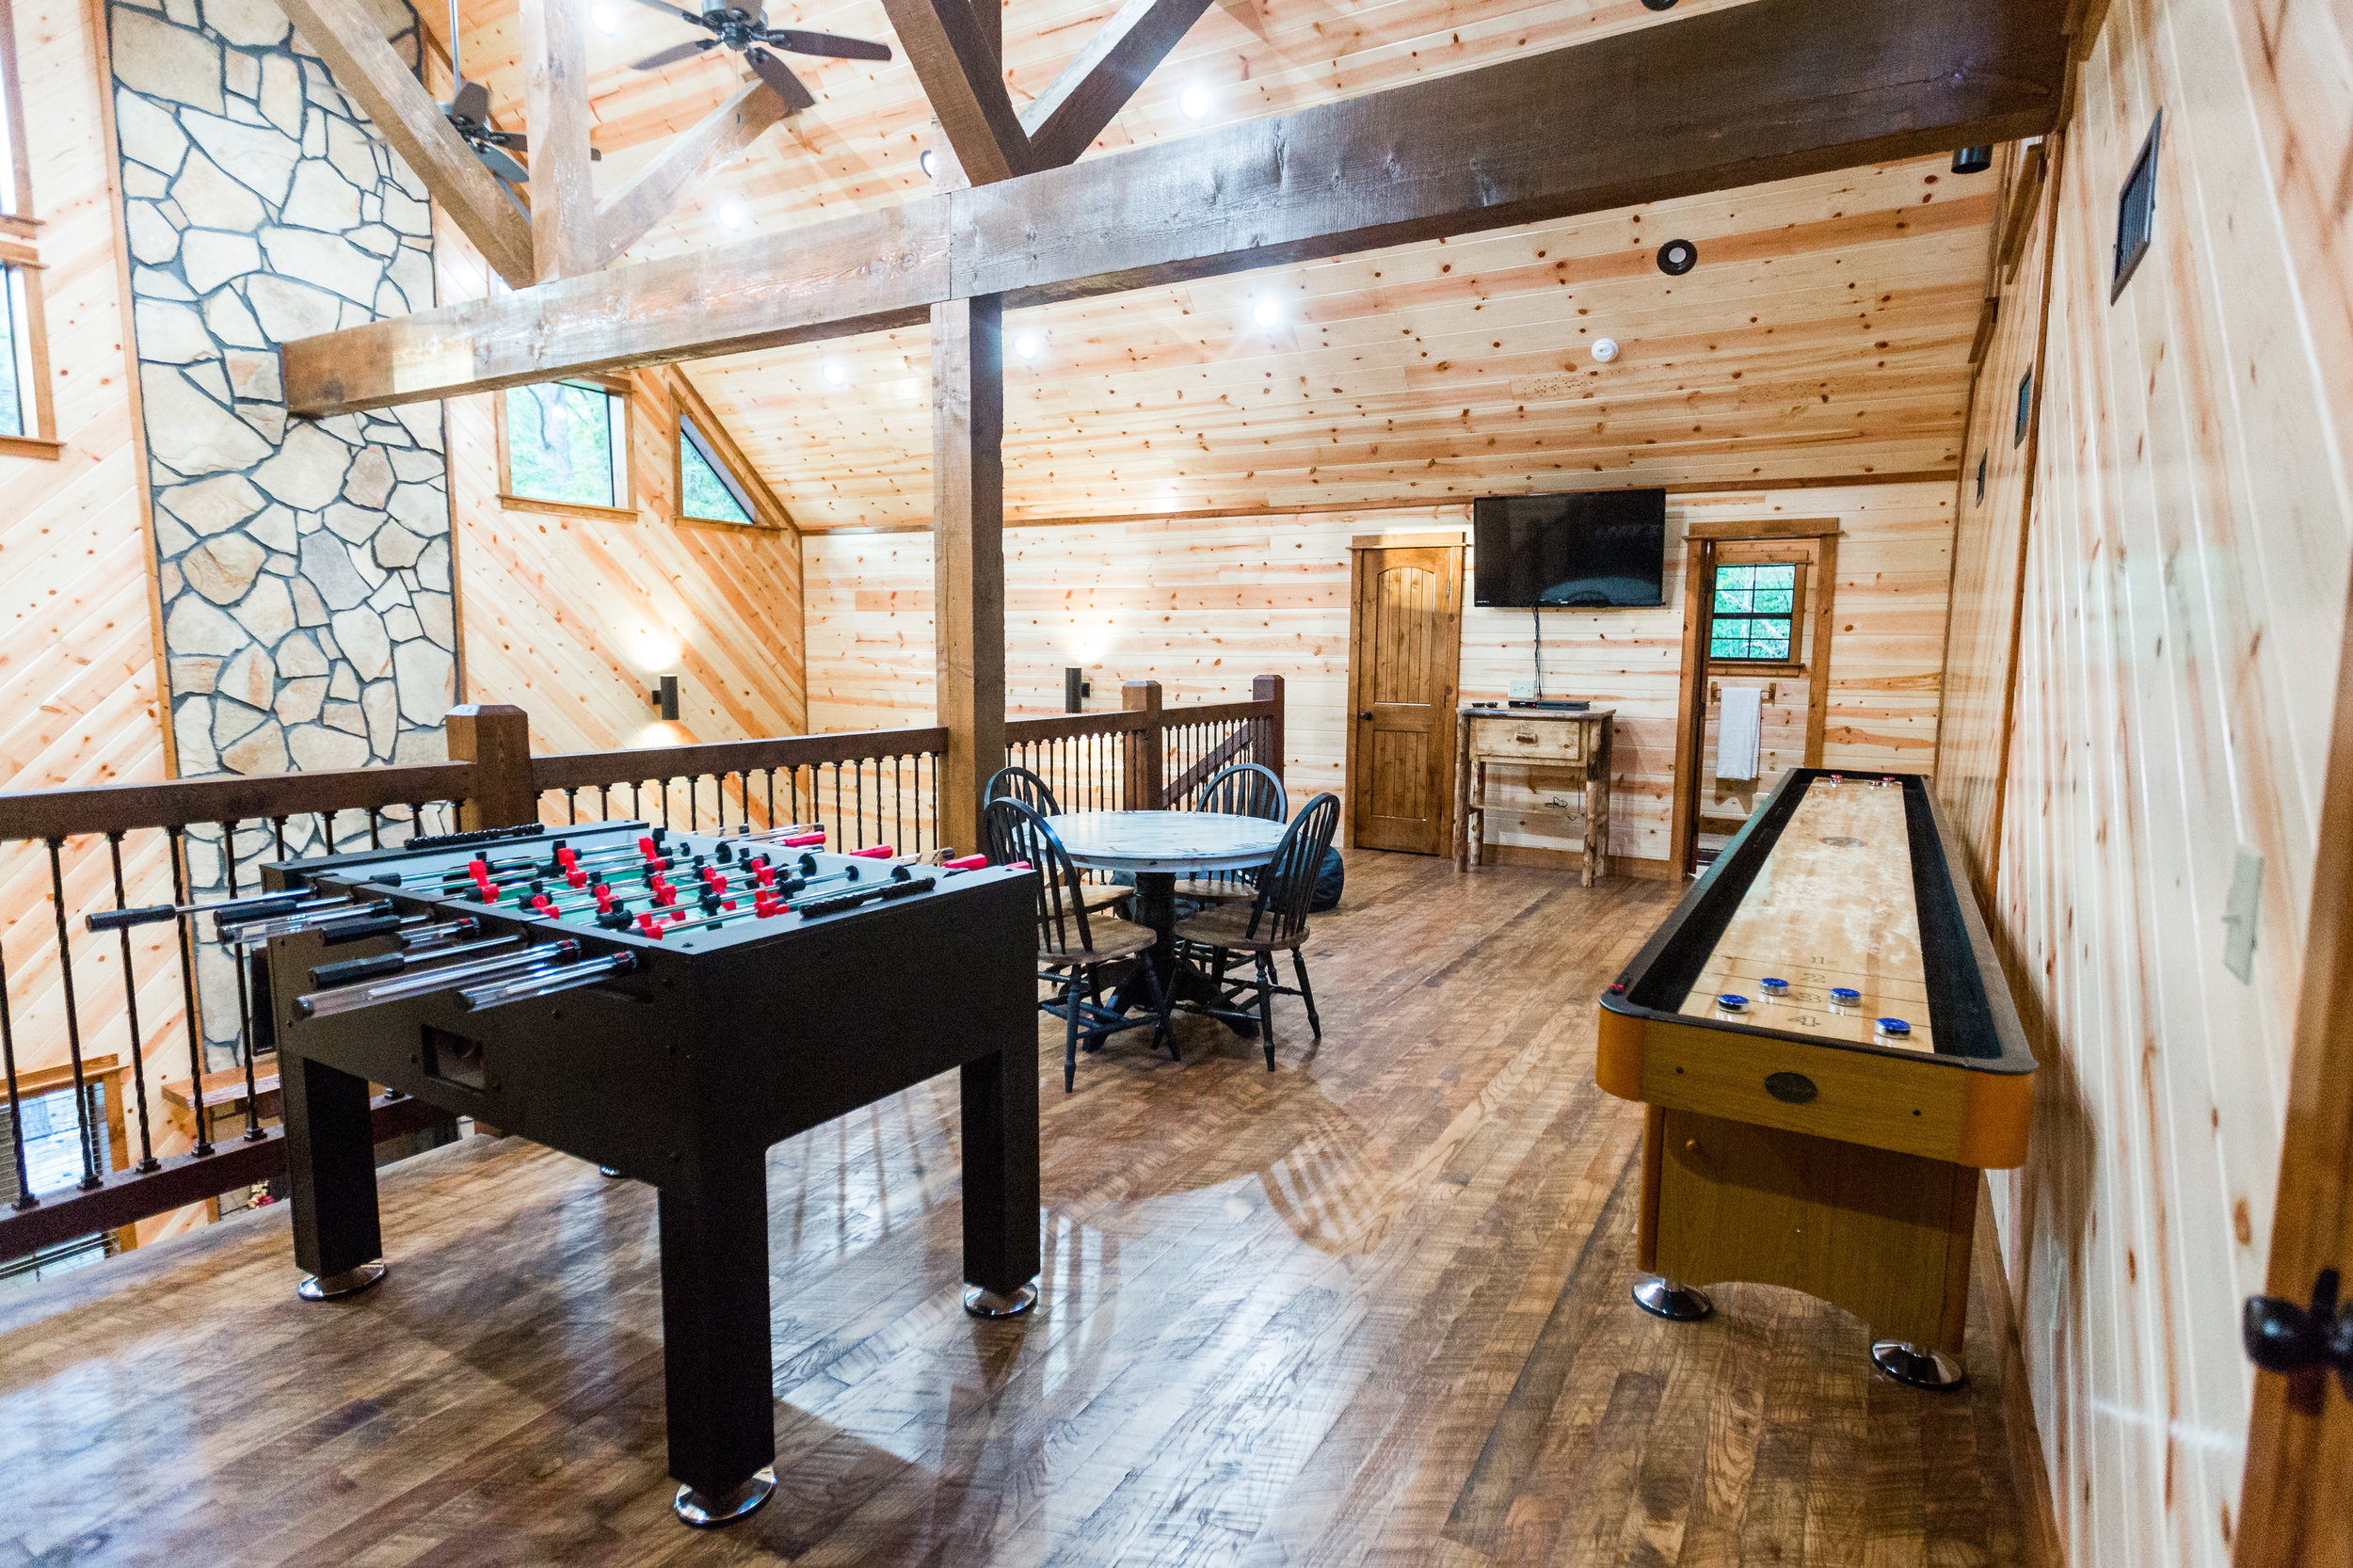 oklahoma luxury cabin rentals beavers bend vacation getaway hochatown mount fork river stephens gap lake ouachita mountains kitchen rustic log games family